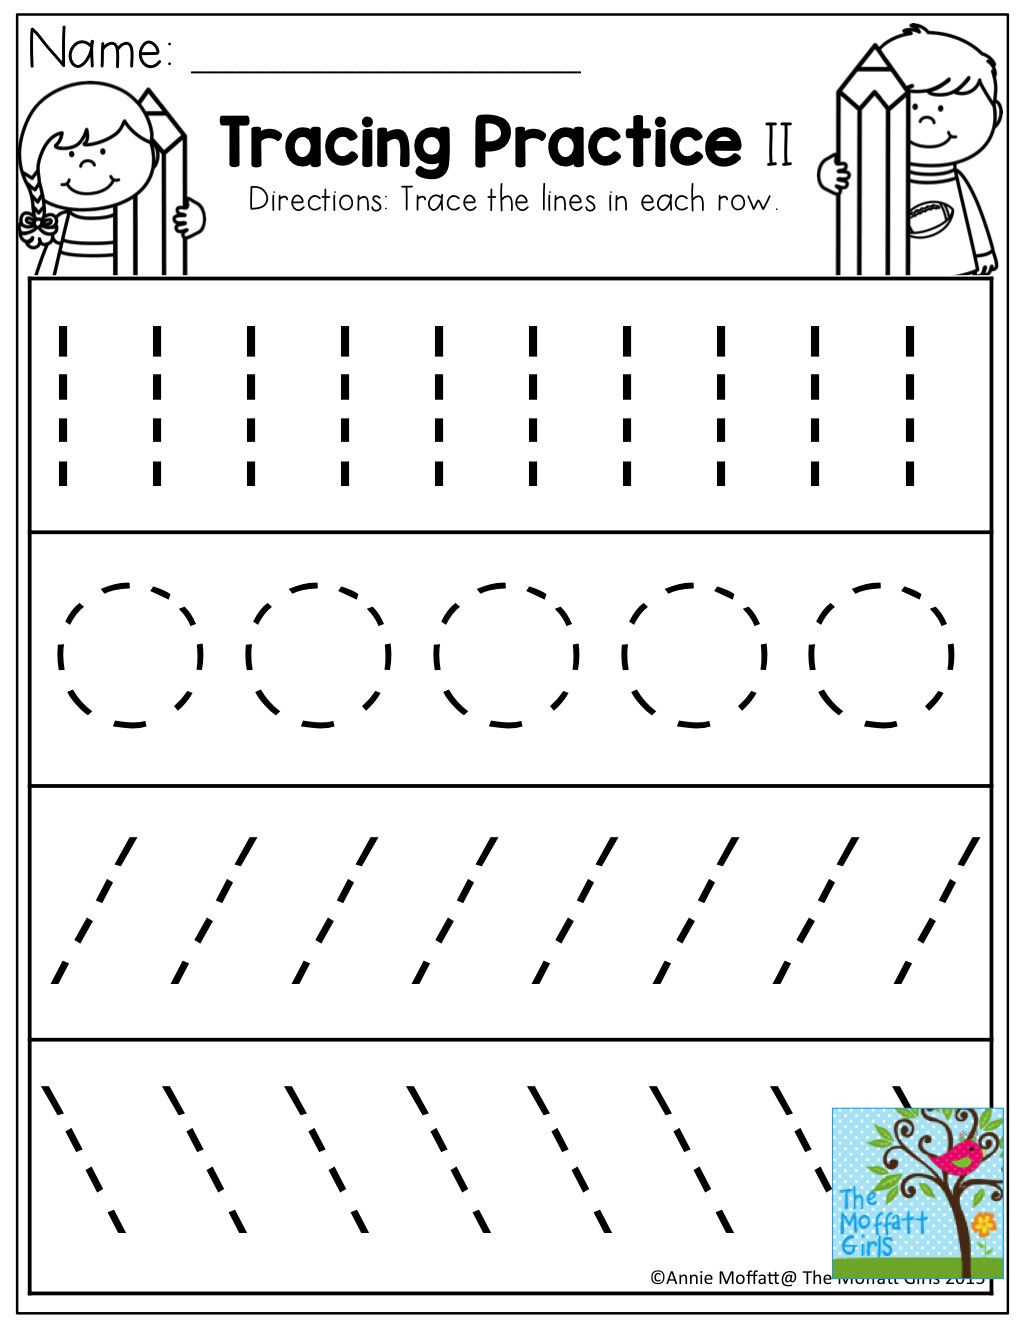 3 Tracing Lines Worksheets For Toddlers Tracing Practice Tons Of Printable For Pre K Kinderga Tracing Worksheets Preschool Preschool Tracing Preschool Writing [ 1325 x 1024 Pixel ]